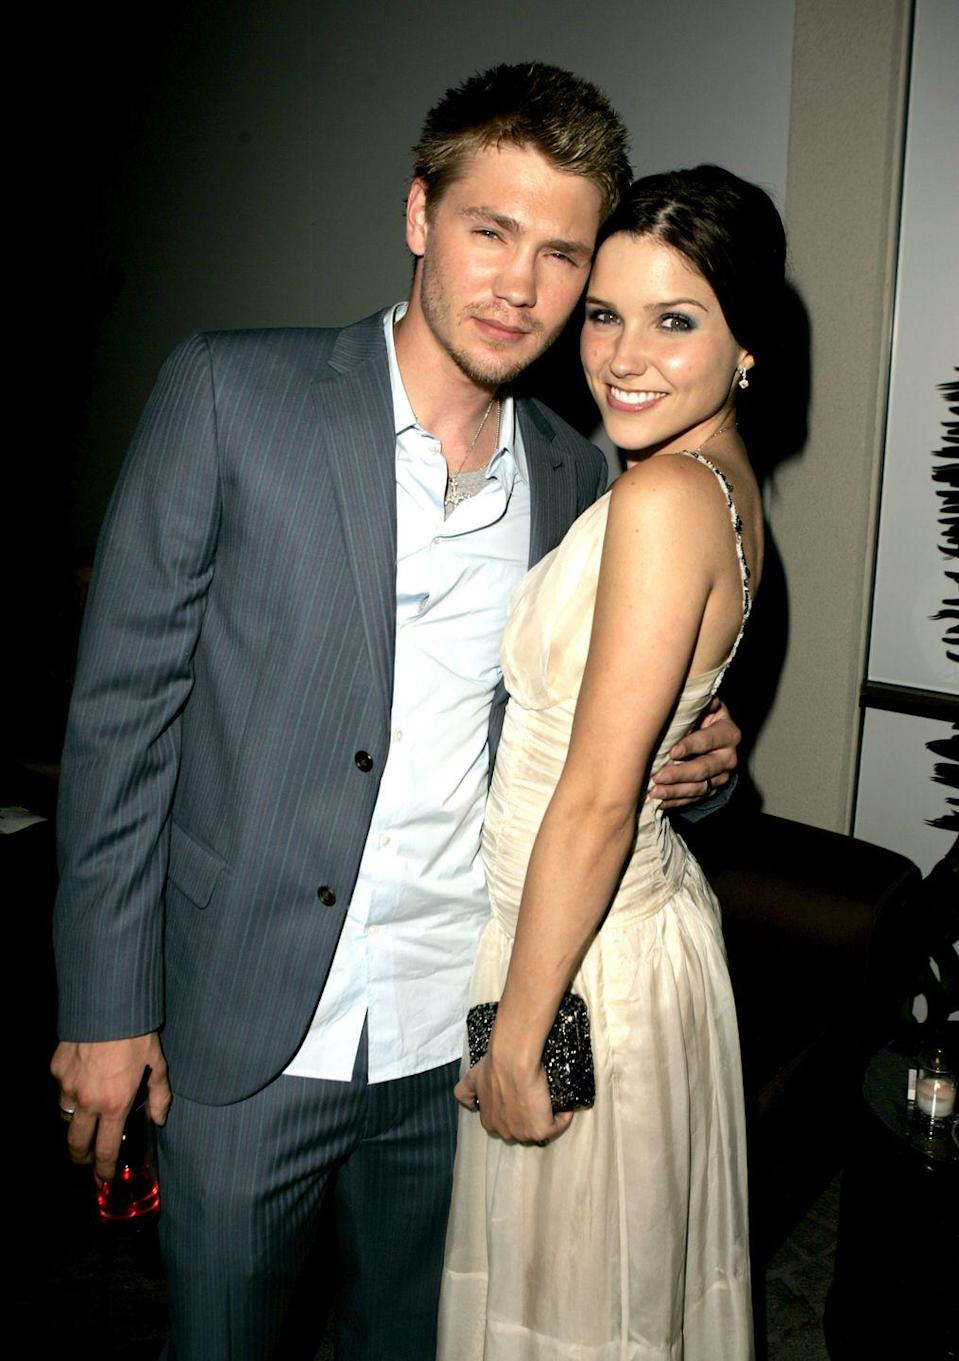 "<p>Much like their <em>One Tree Hill </em>characters Brooke Davis and Lucas Scott, Sophia Bush and Chad Michael Murray were not destined for each other. The former co-stars wed in <a href=""http://www.usmagazine.com/celebrity-news/news/sophia-bush-says-she-and-ex-husband-chad-michael-murray-had-no-business-being-together-201471"" rel=""nofollow noopener"" target=""_blank"" data-ylk=""slk:2005"" class=""link rapid-noclick-resp"">2005</a> only to separate a short five months later. After the split, the former couple continued to work together on the show until the series finale in 2012. </p>"